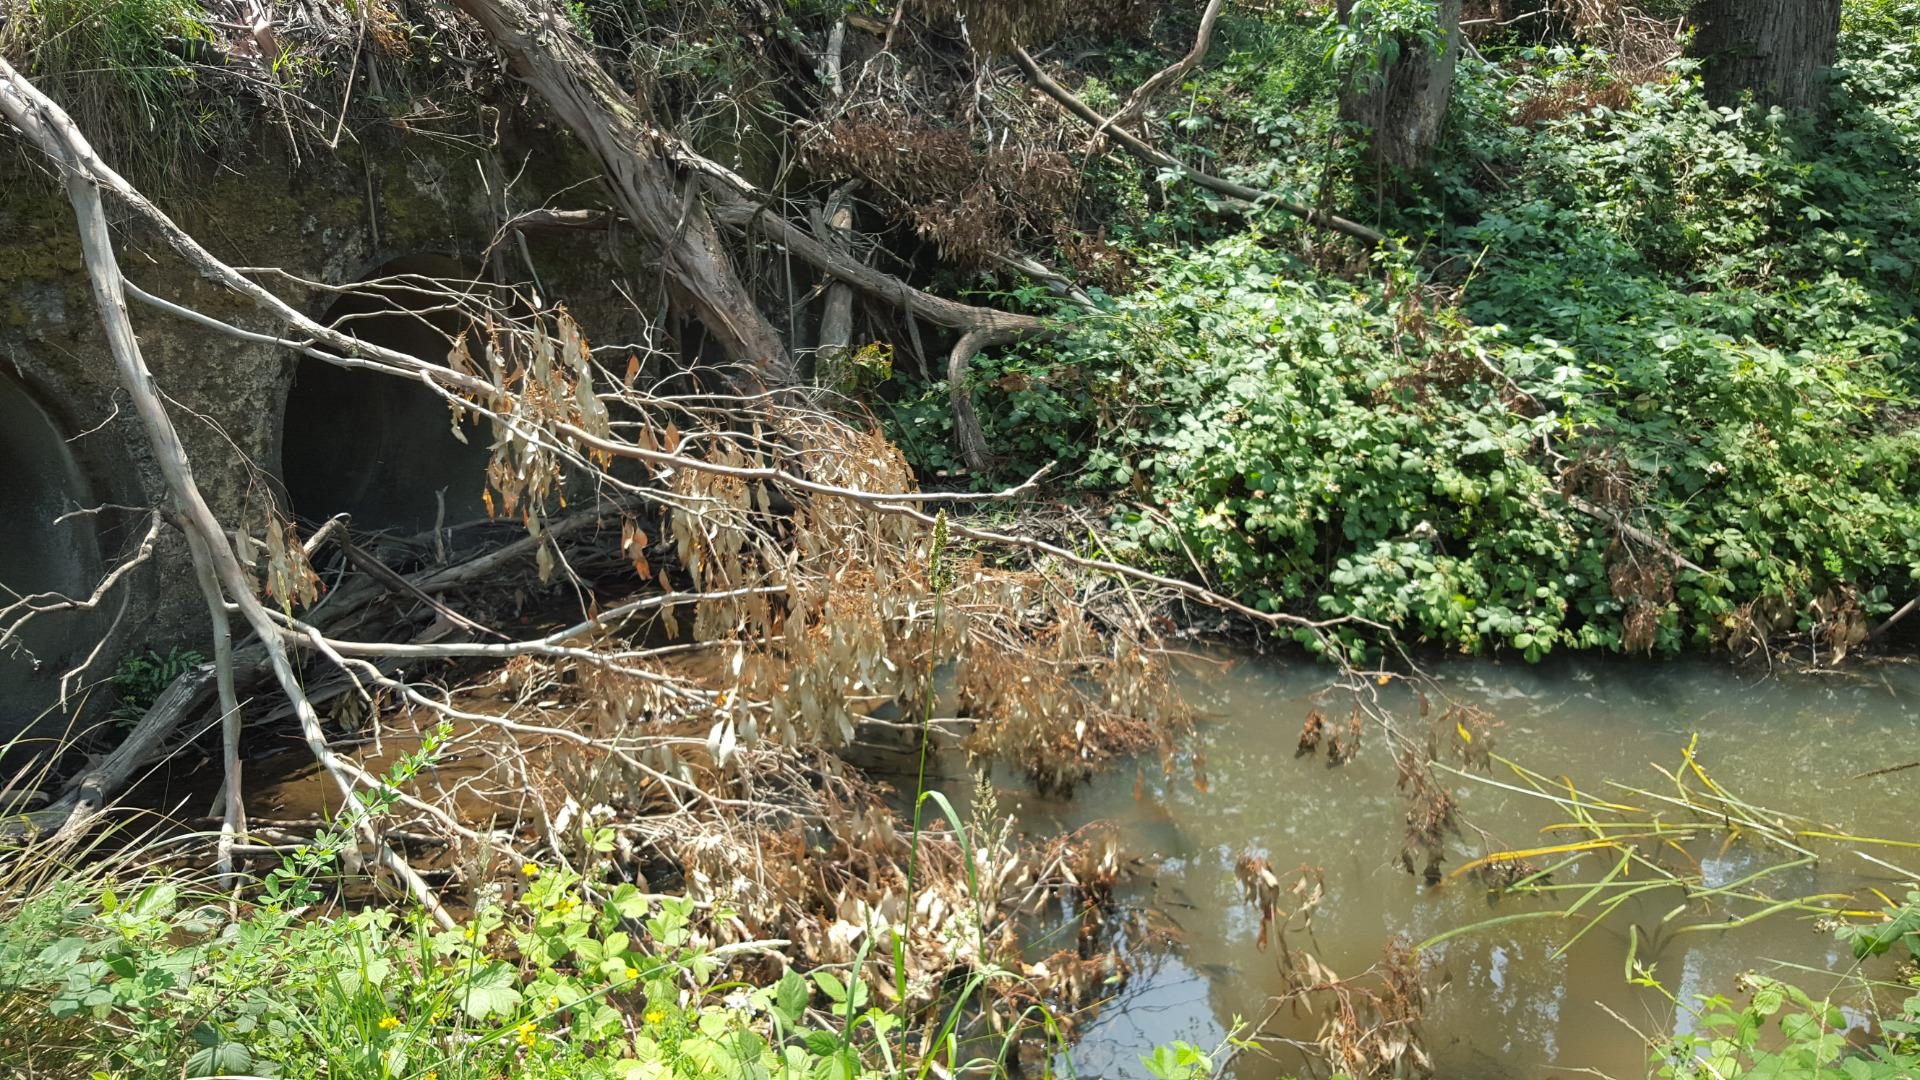 Appearance of site altered by fallen tree branches. Water appears cloudy in photo but is actually clear.